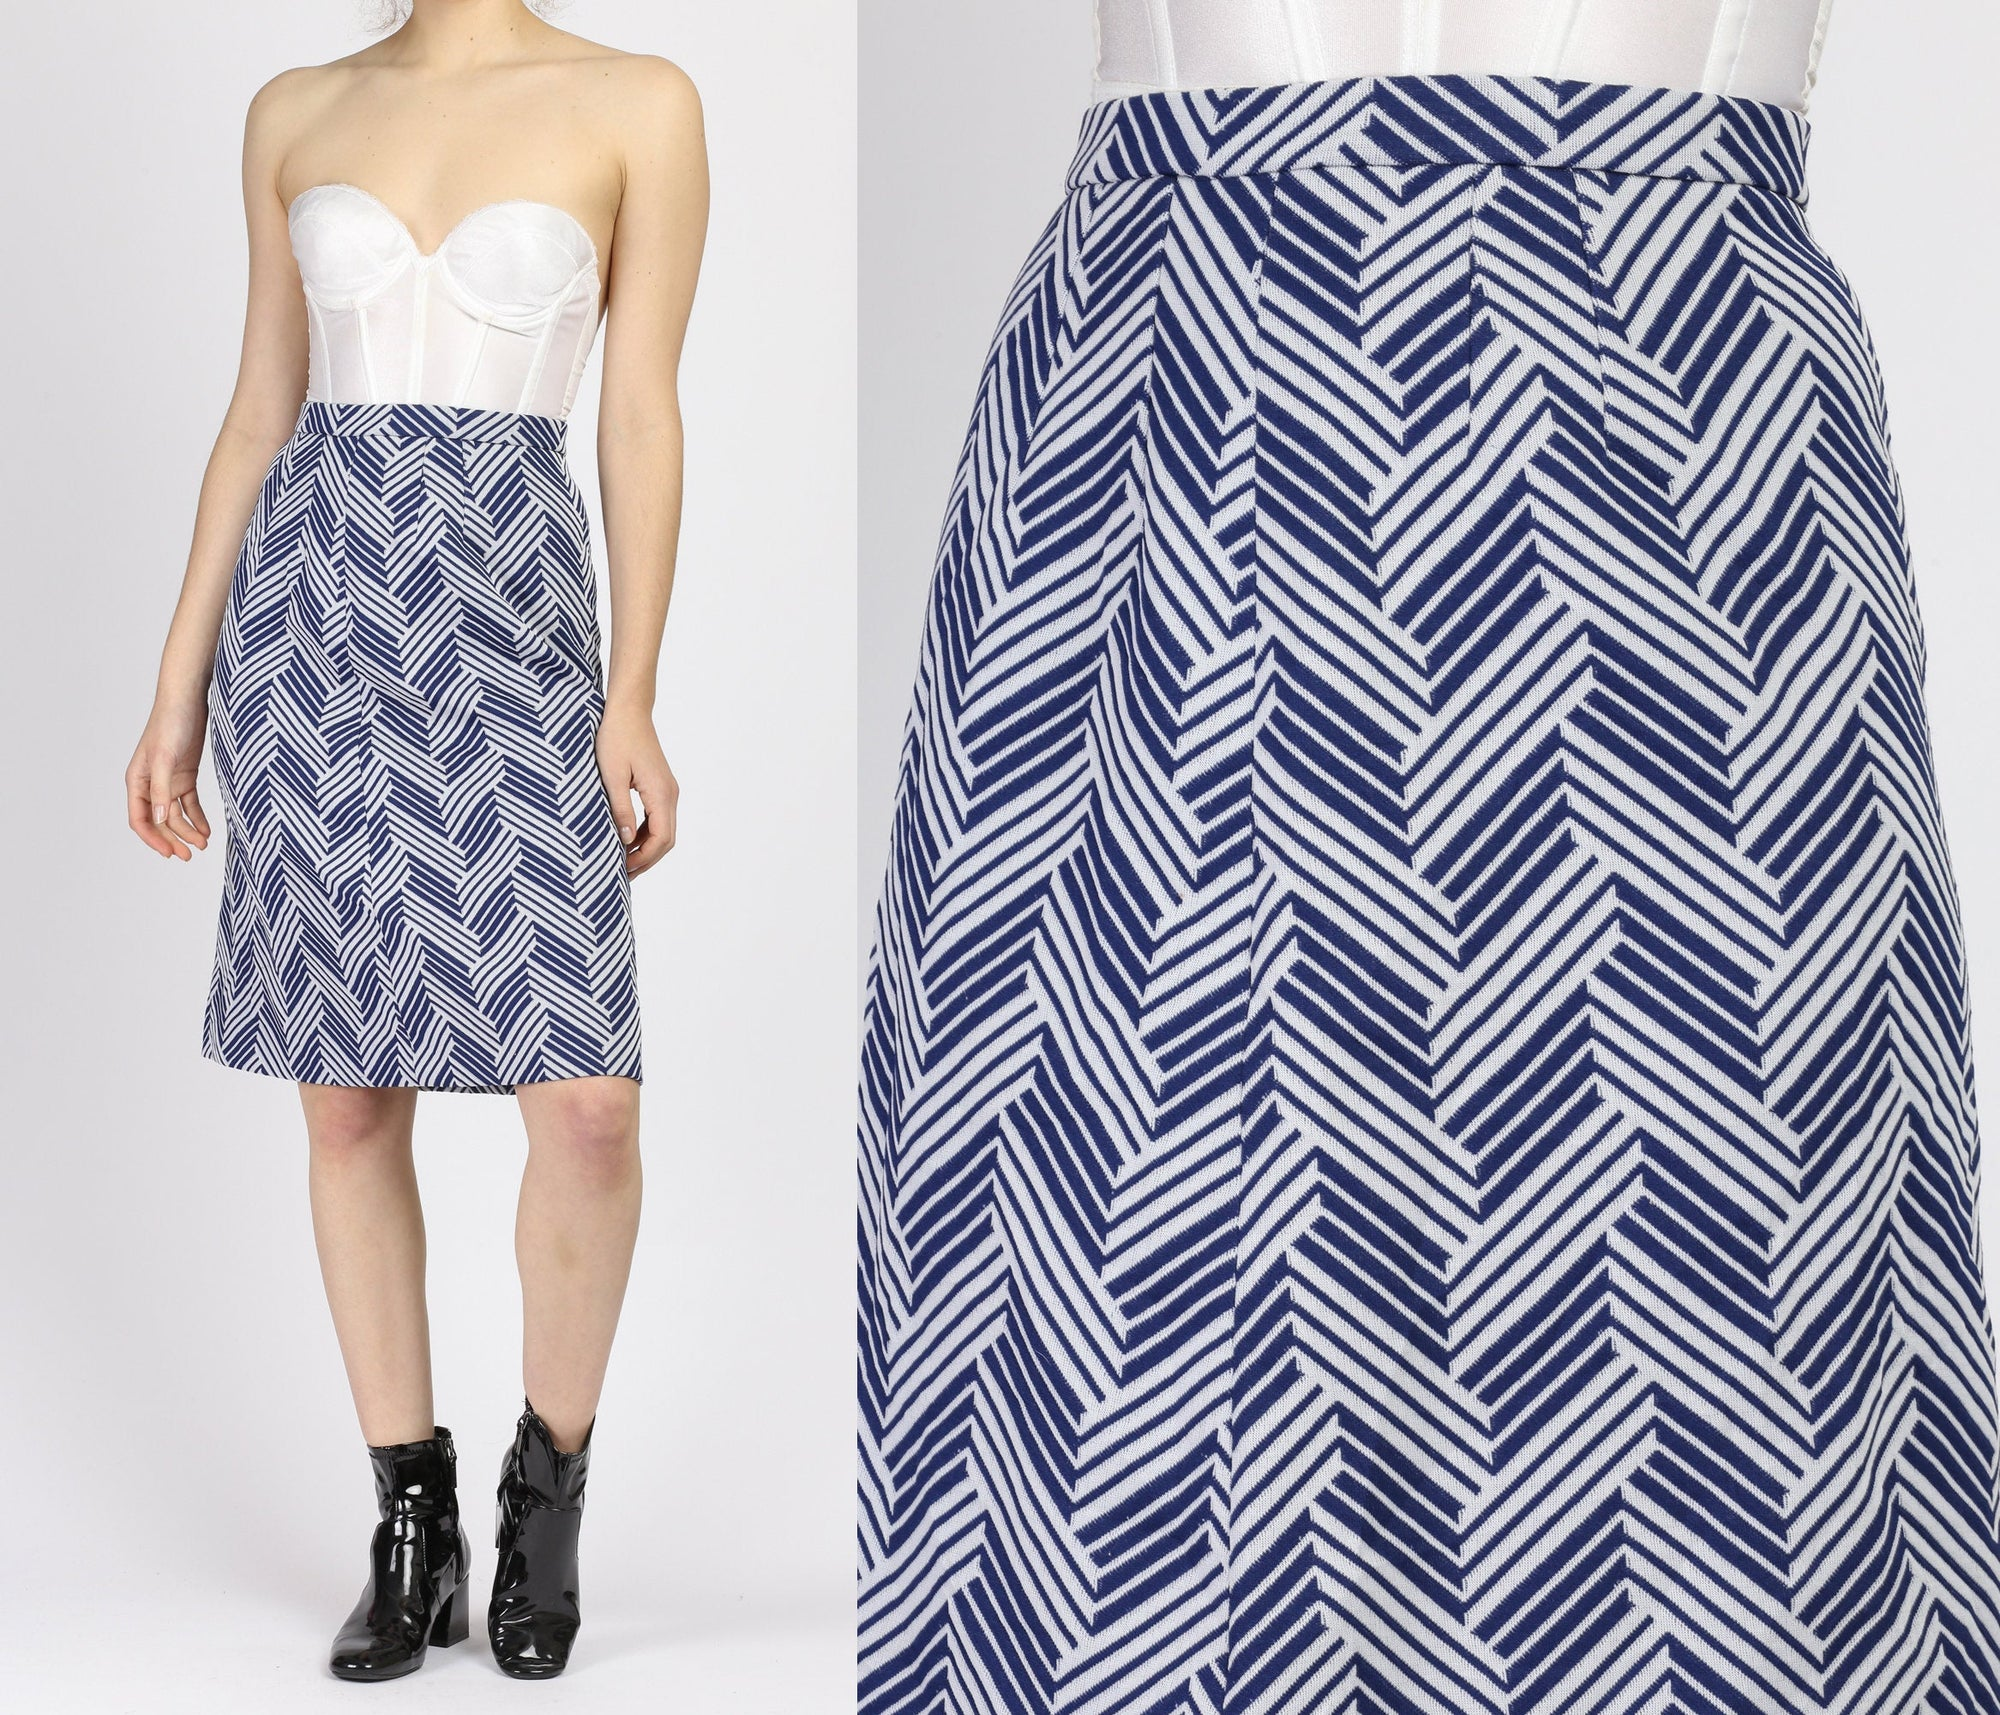 70s Blue & White Herringbone Skirt - Small